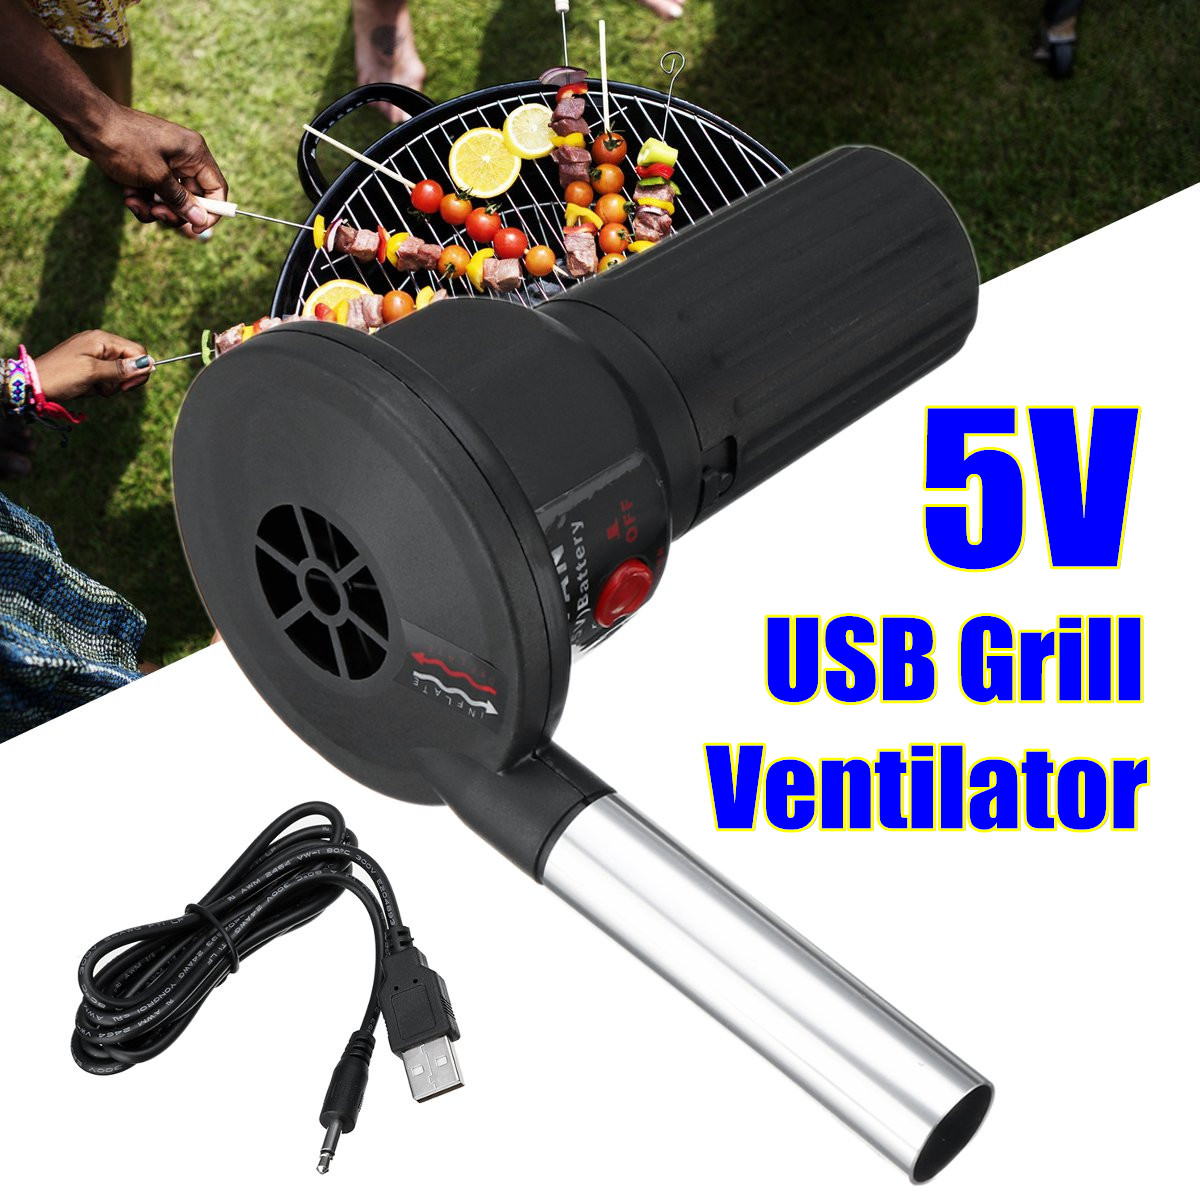 Beautiful Professional Bbq Fan Air Rotating Cooling Fan For Barbecue Air Blowers Barbecue Outdoor Camping Picnic Barbecue Cooking Tool Home Appliances